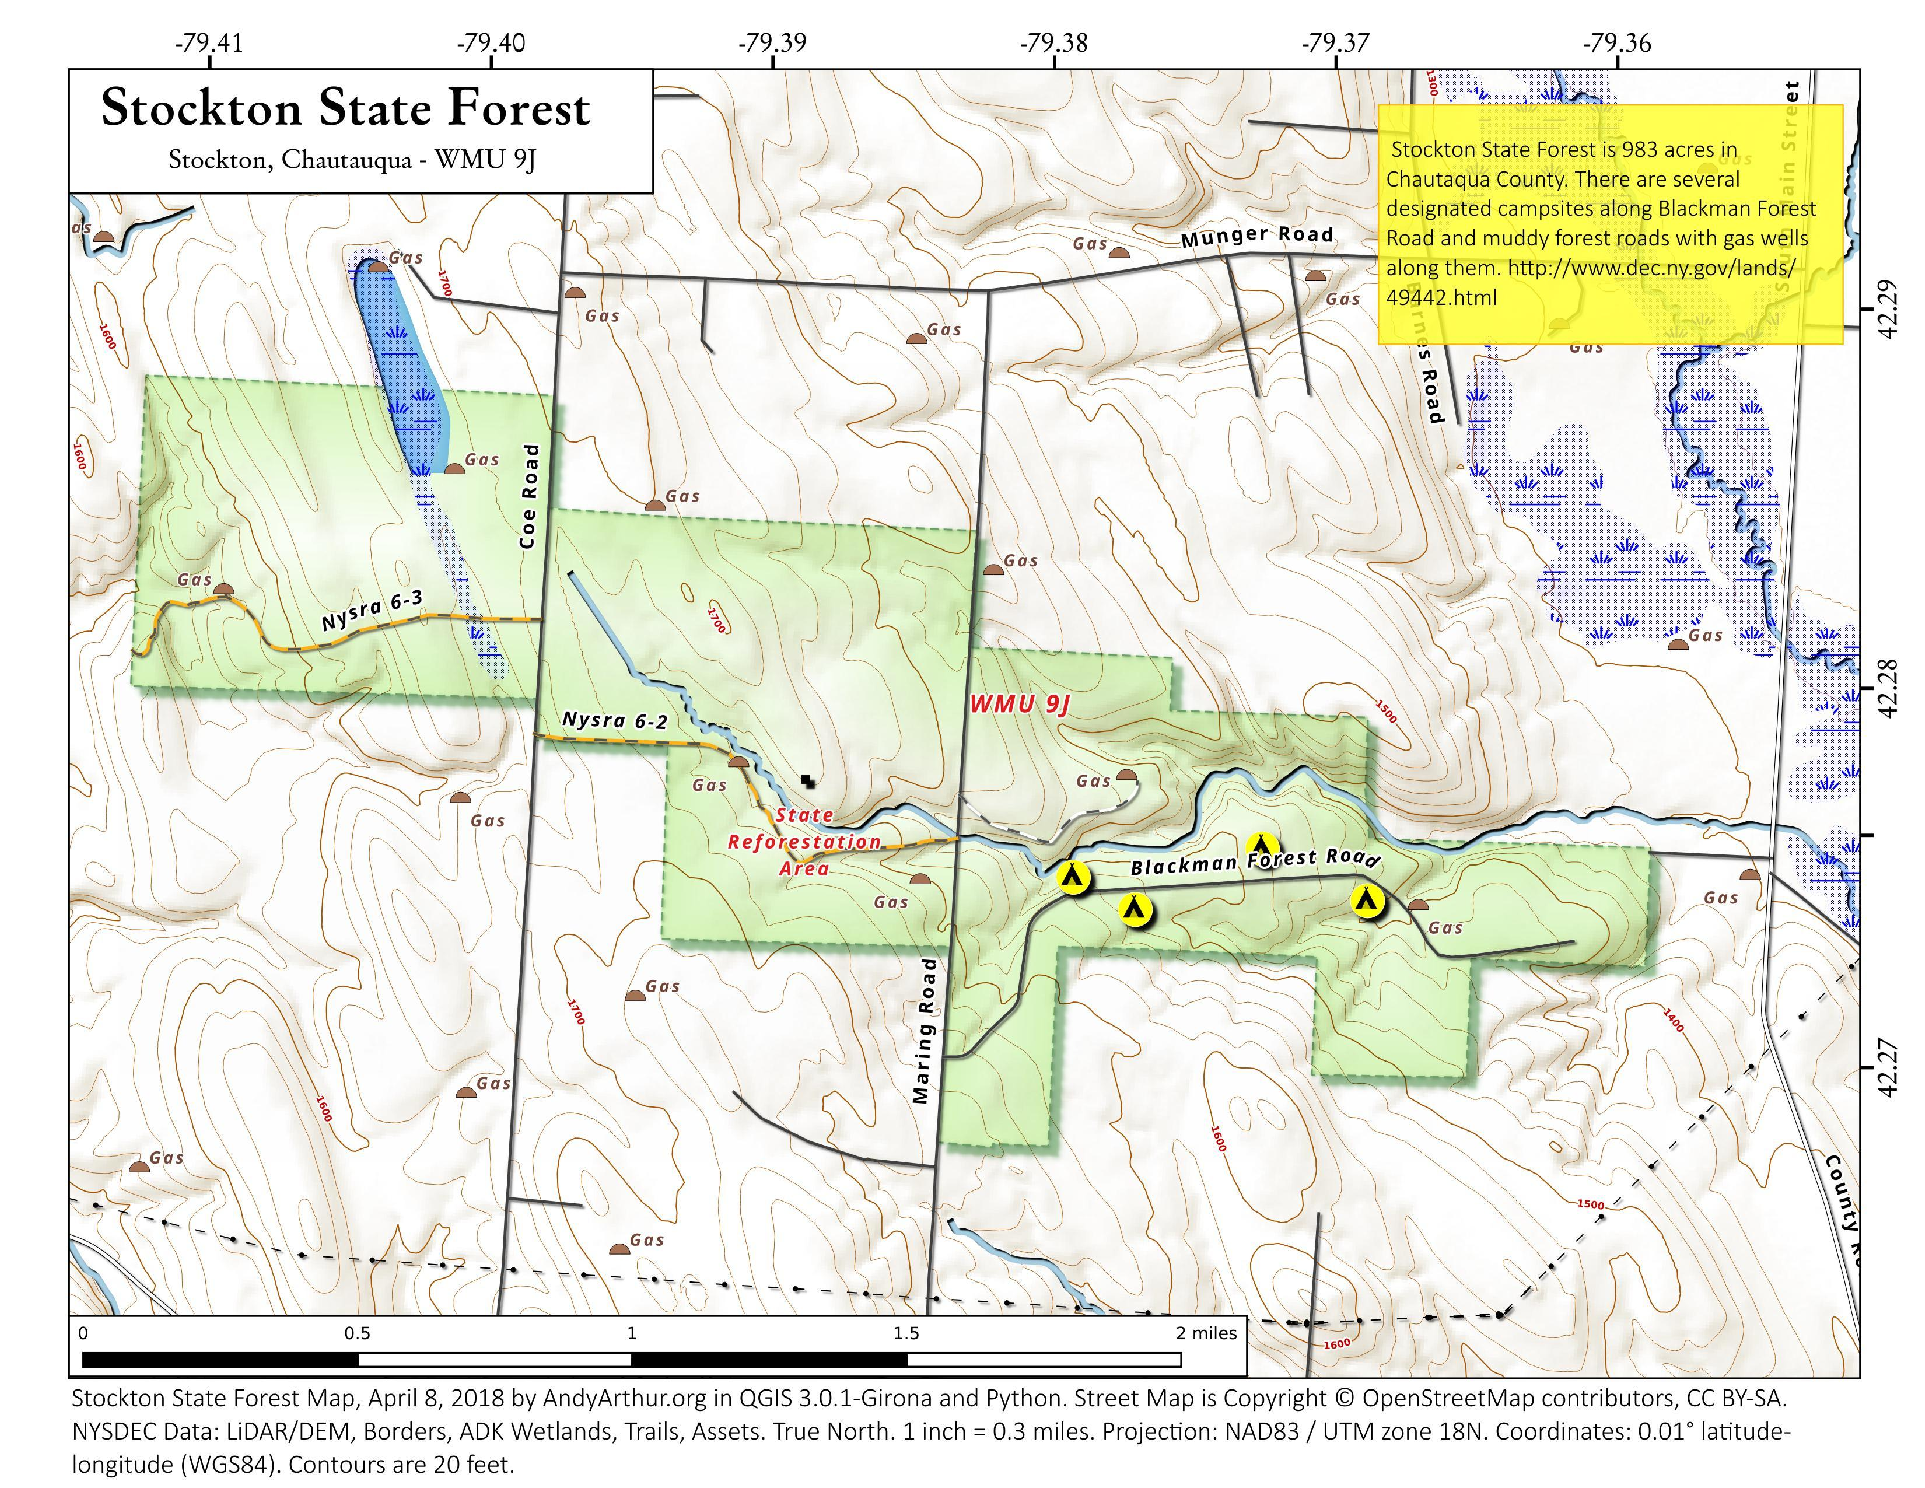 Map Stockton State Forest Andy Arthurorg